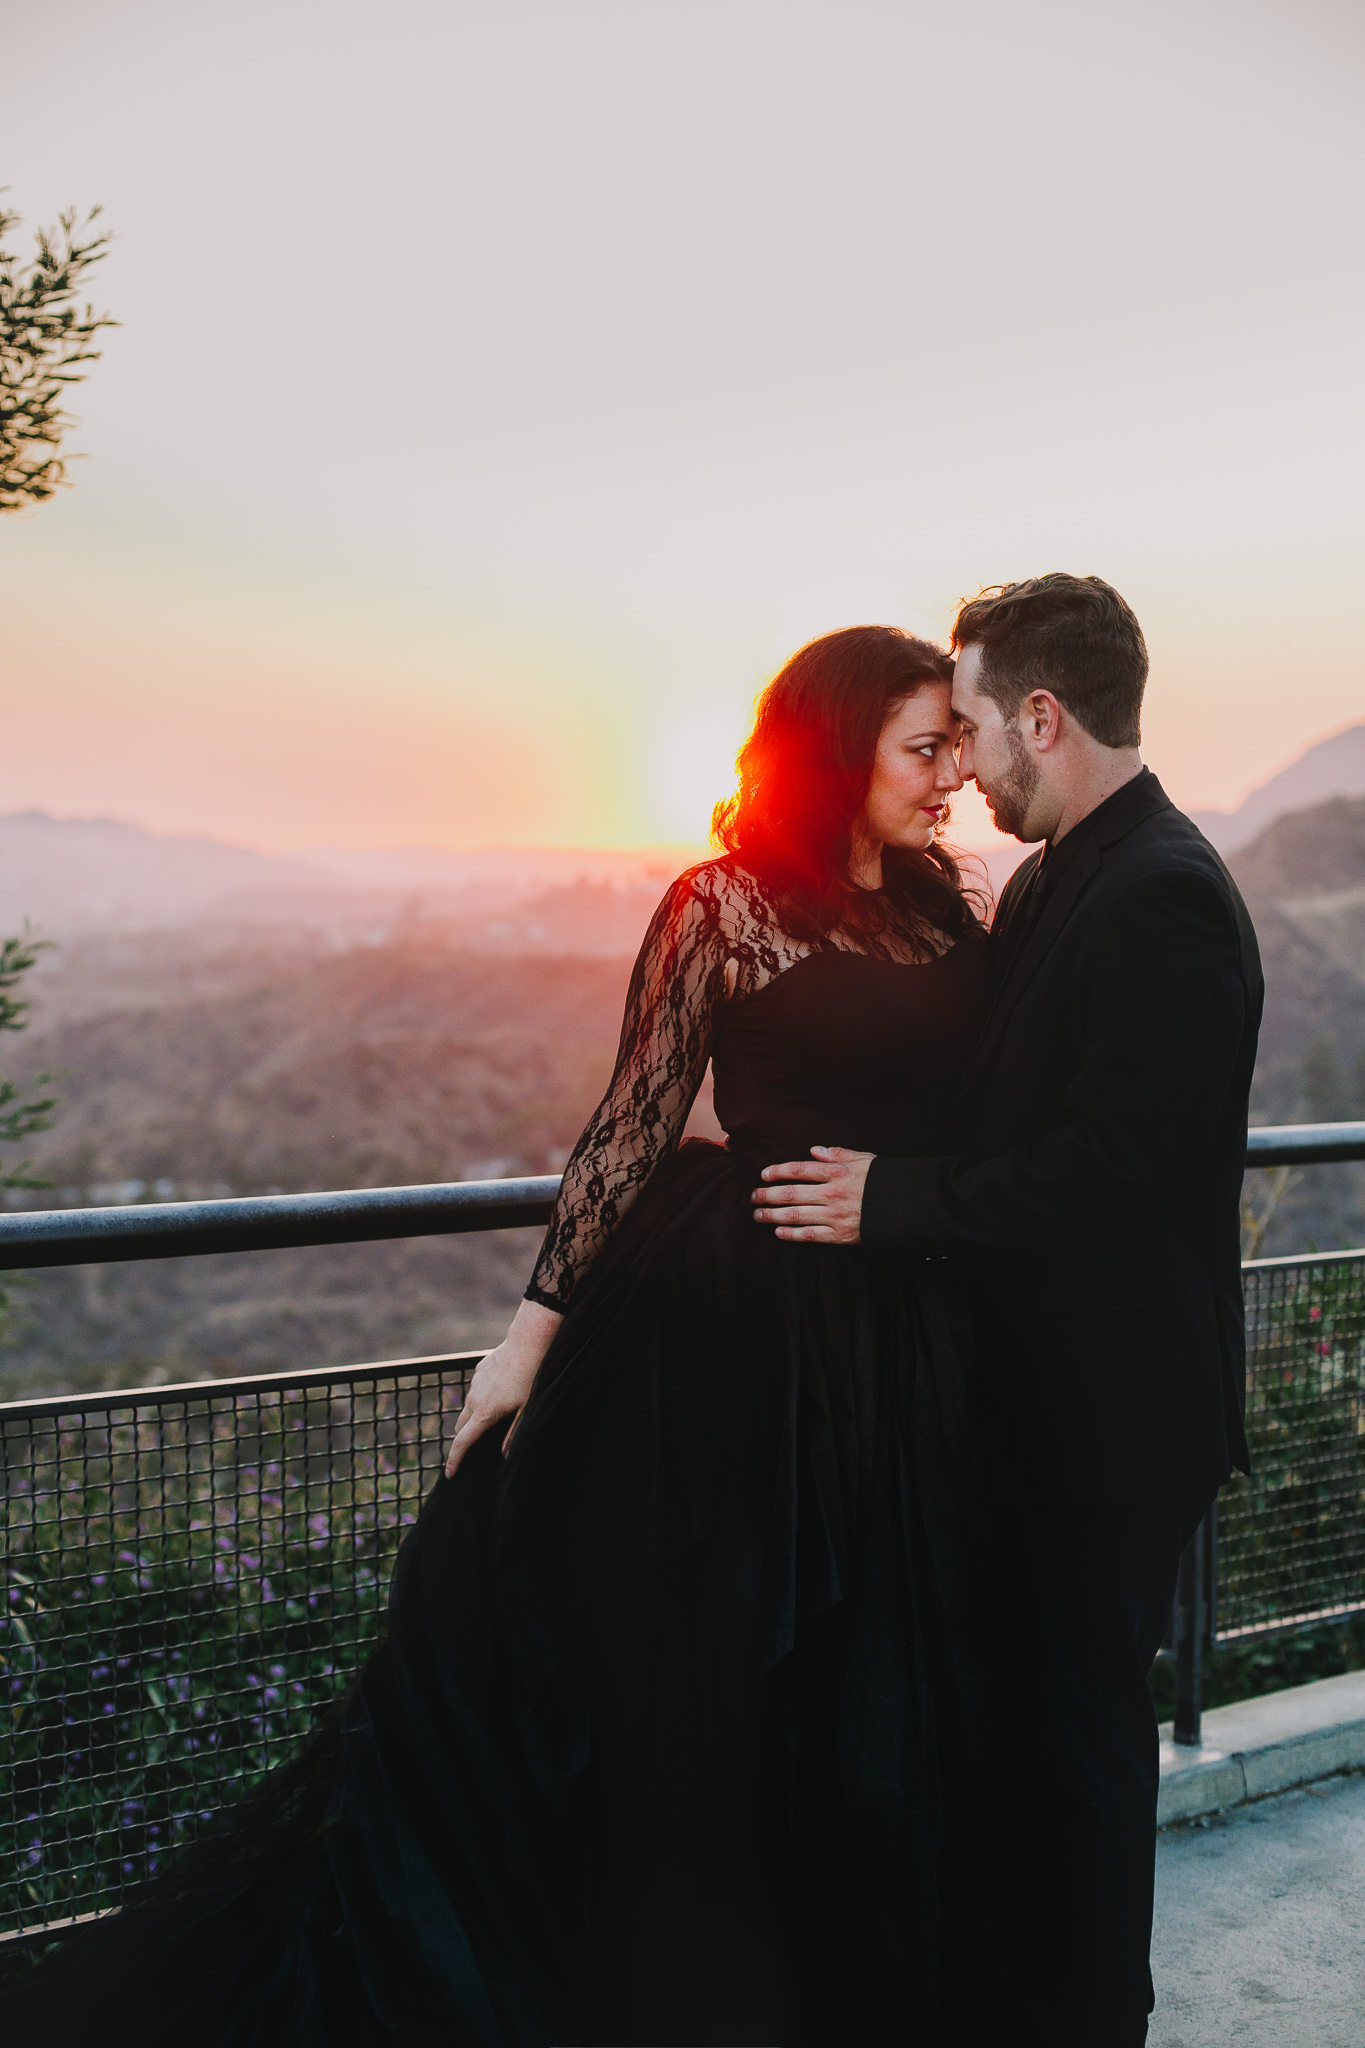 Archer Inspired Photography Los Angeles Wedding Engagement Lifestyle Documentary Griffith Observatory Downtown LA Photographer-119.jpg